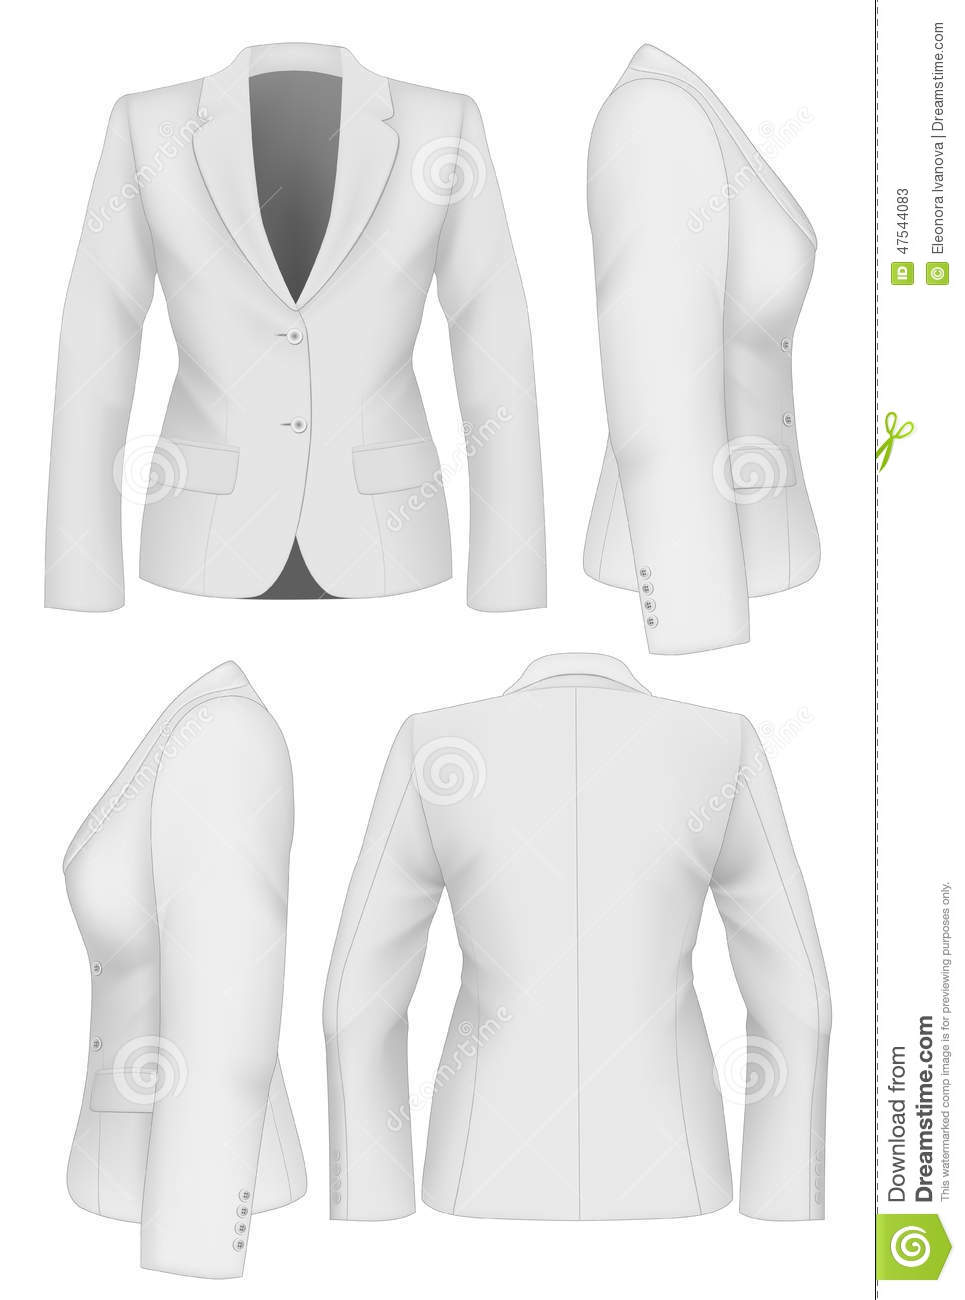 Ladies Suit Jacket Stock Vector Illustration Of Front 47544083